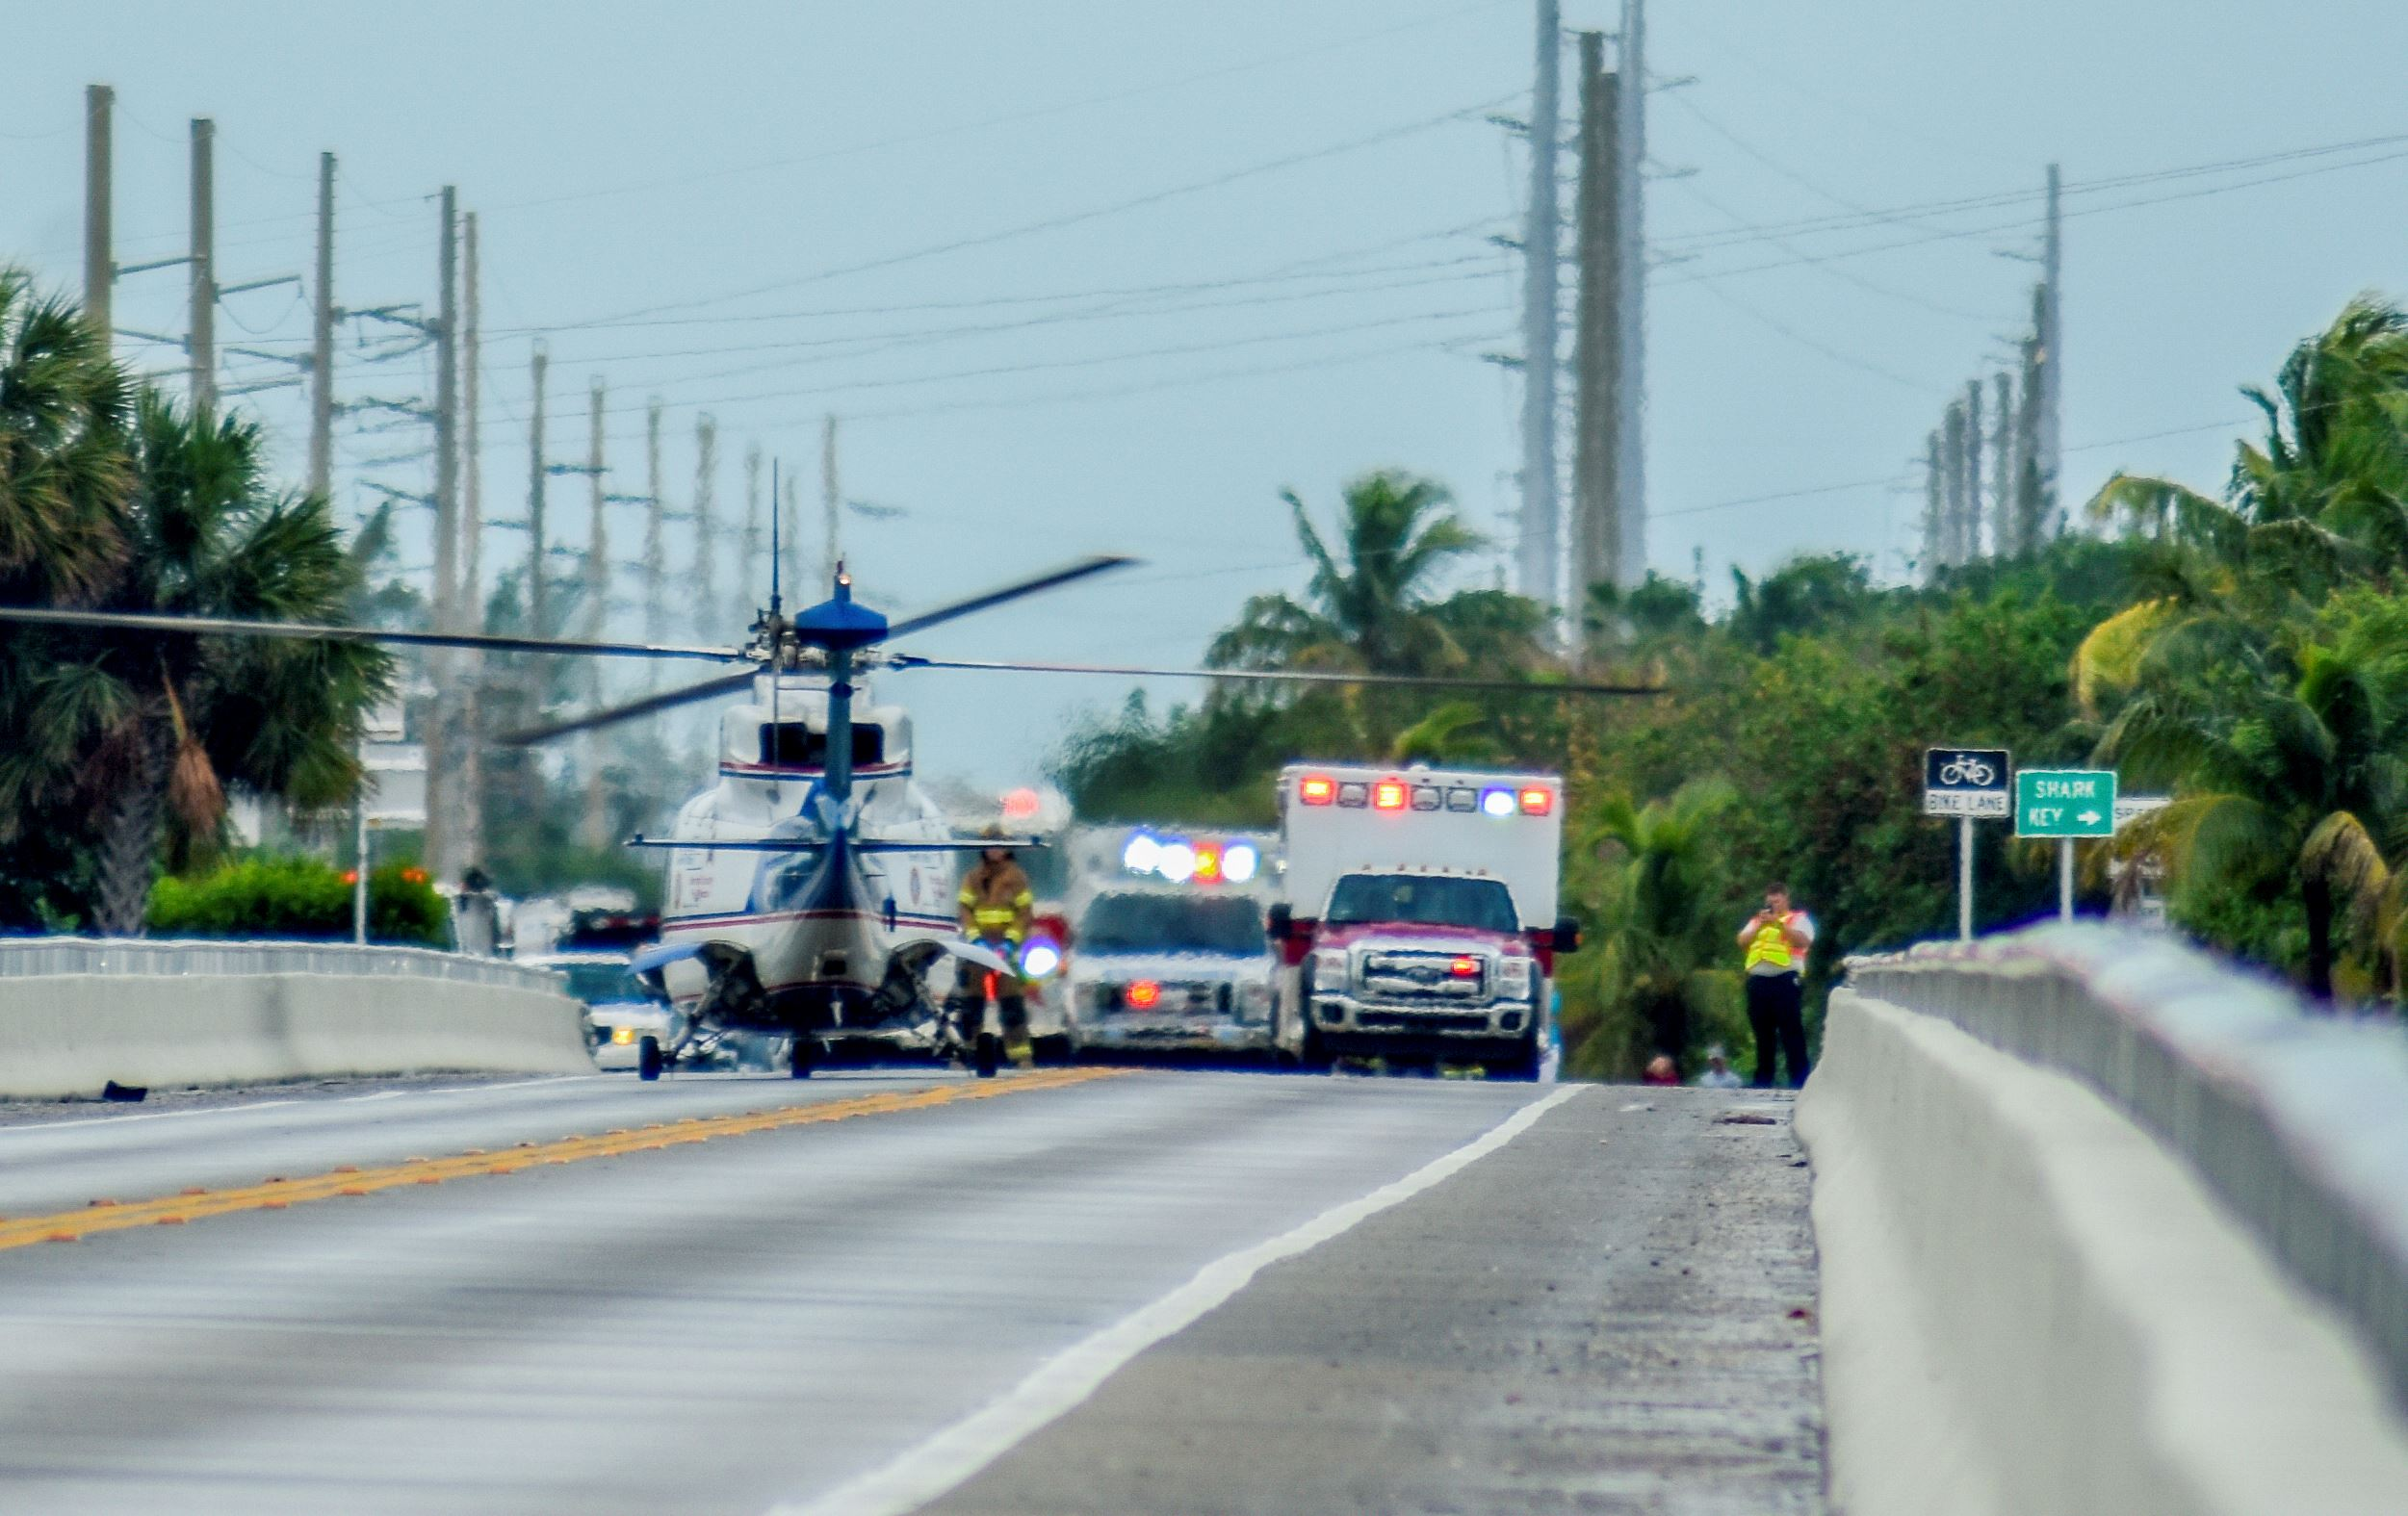 Trauma Star helicopter at a bridge accident